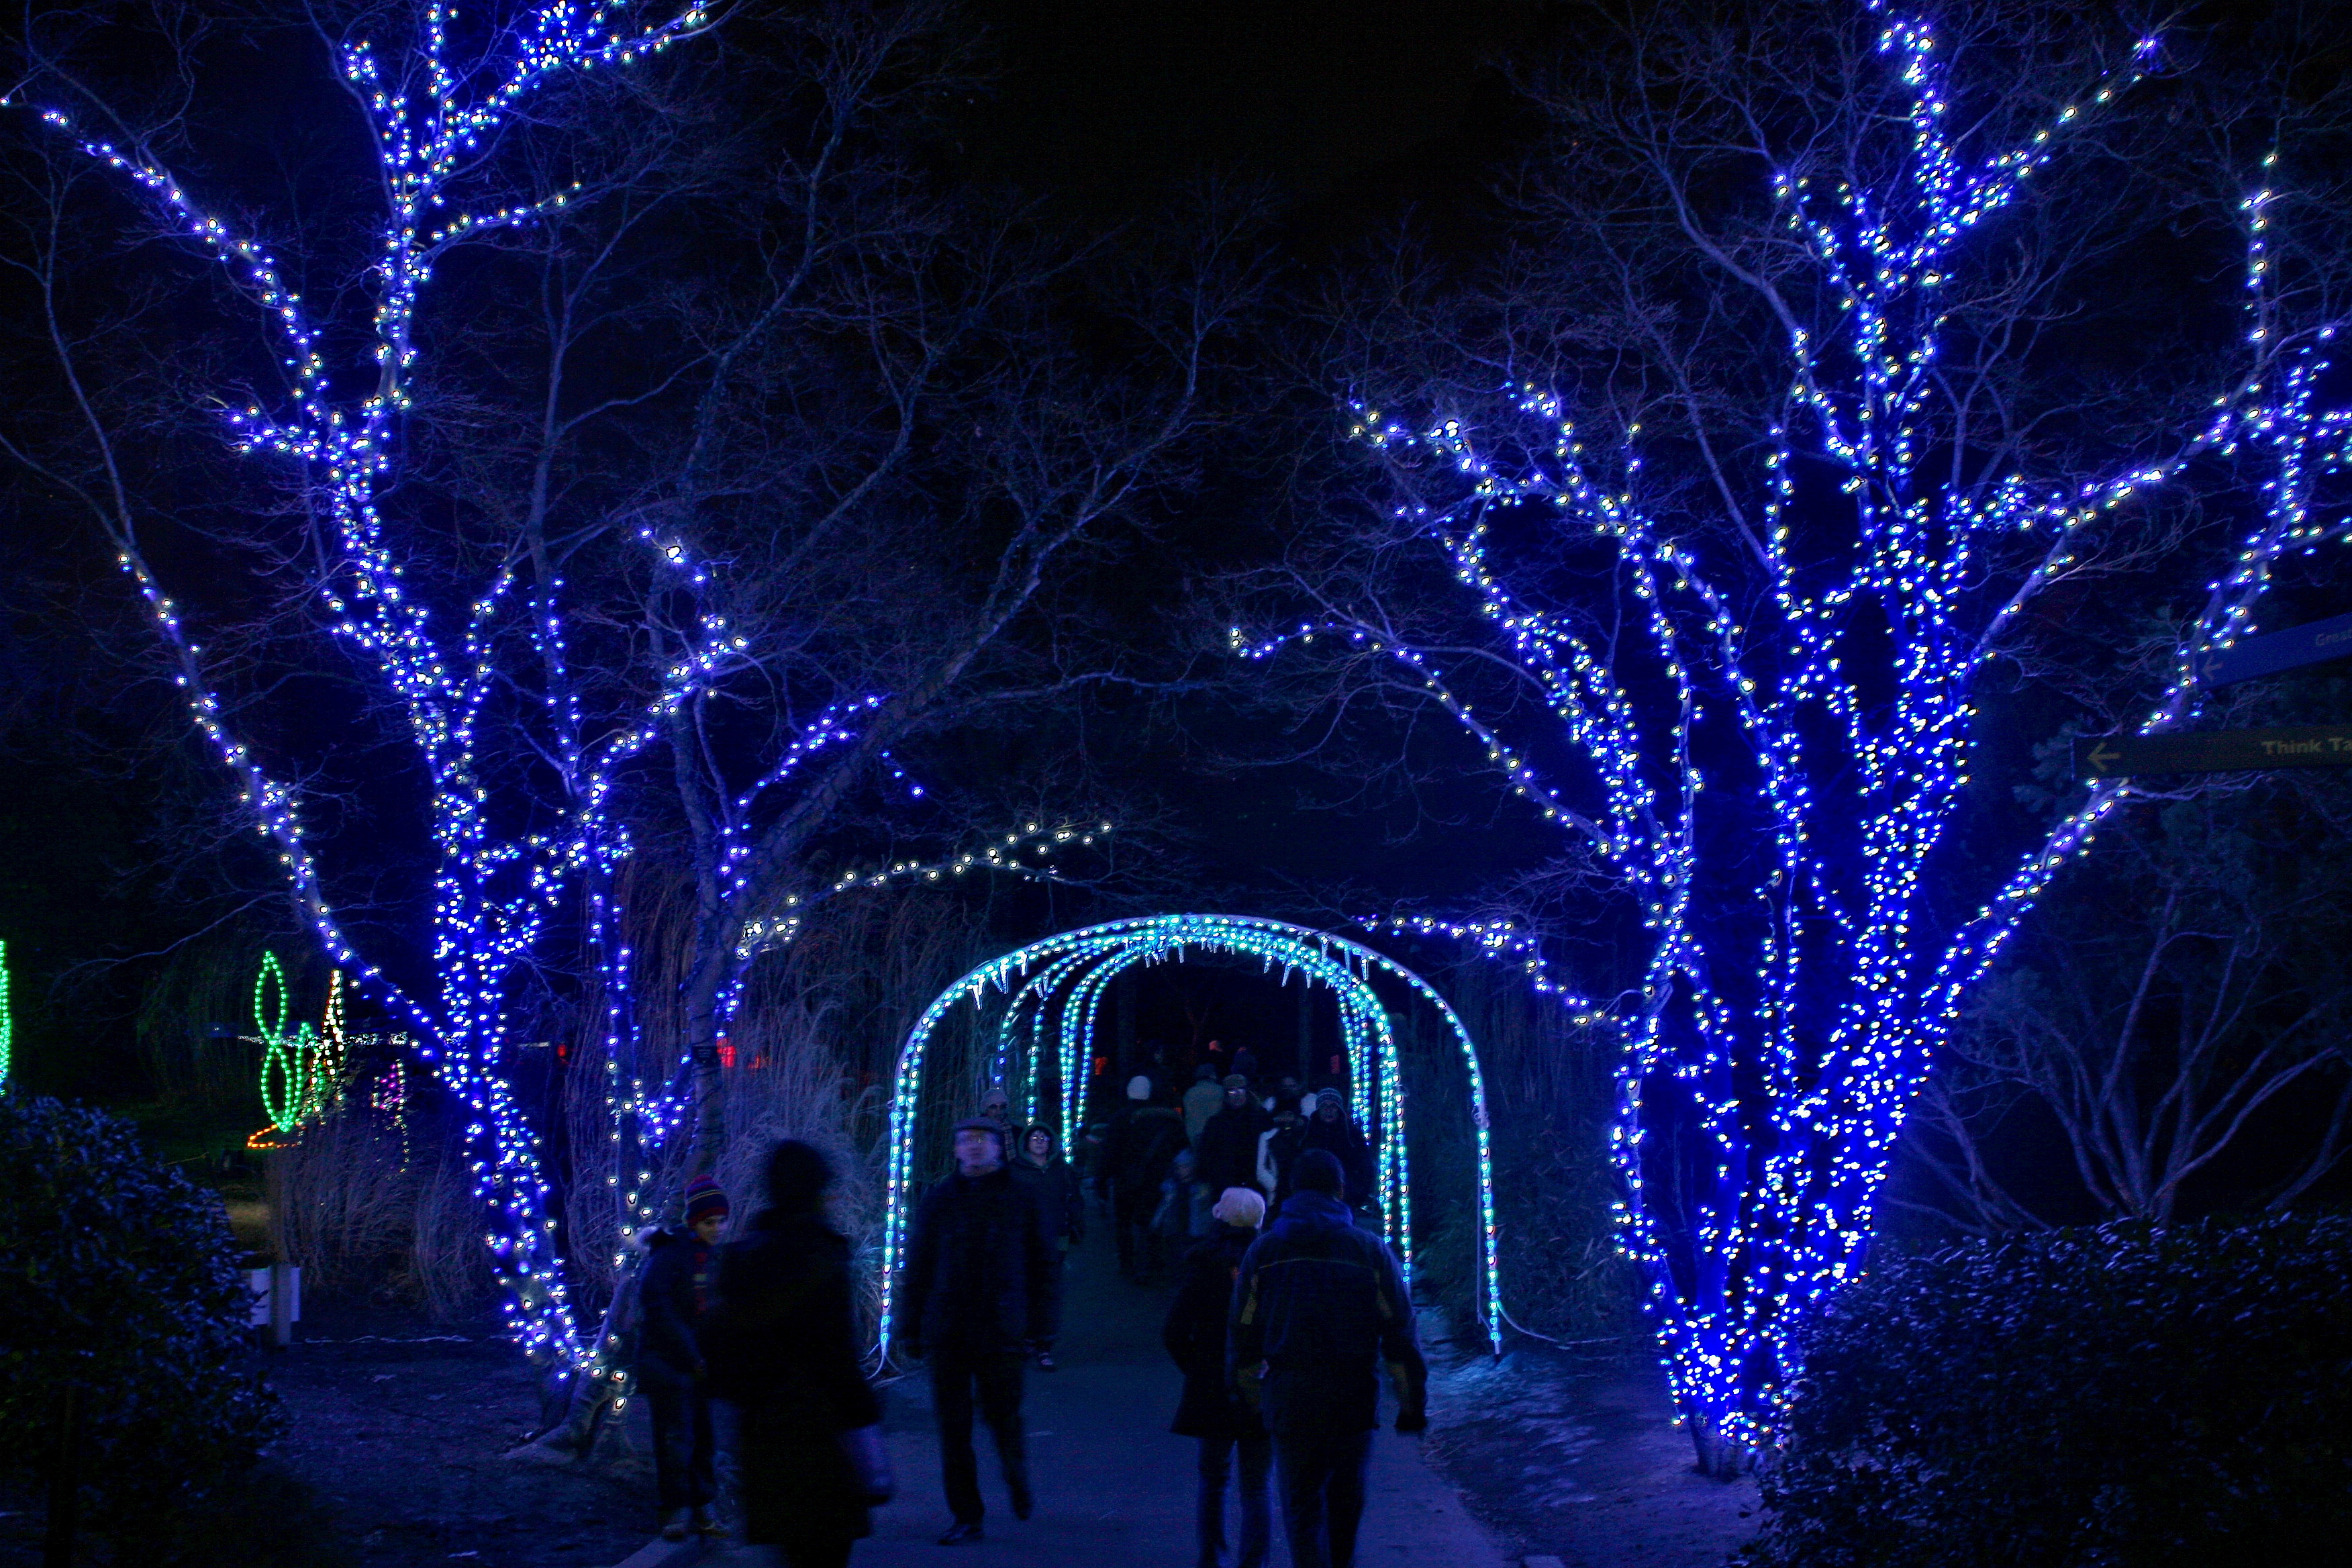 File:ZooLights 2010 - Holiday Lights at the National Zoo (5308917838 ...